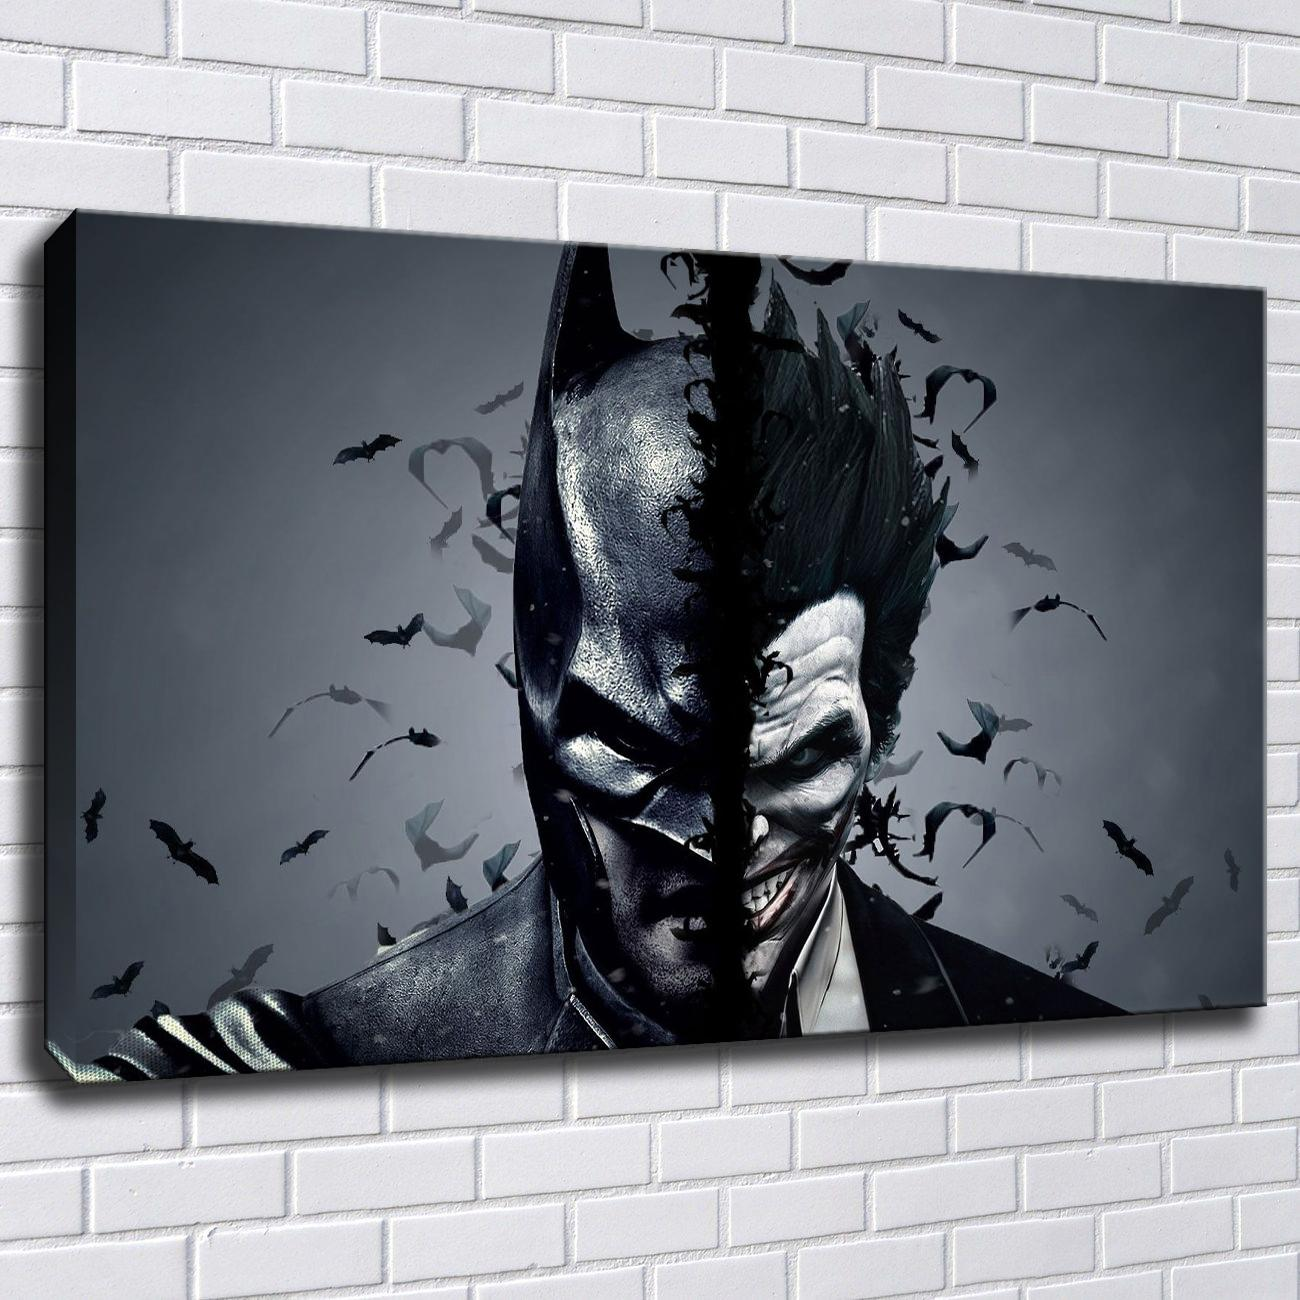 Batman And Joker Canvas Painting Print Pictures For Living Room Home Decor Abstract Wall Art Oil Painting Poster